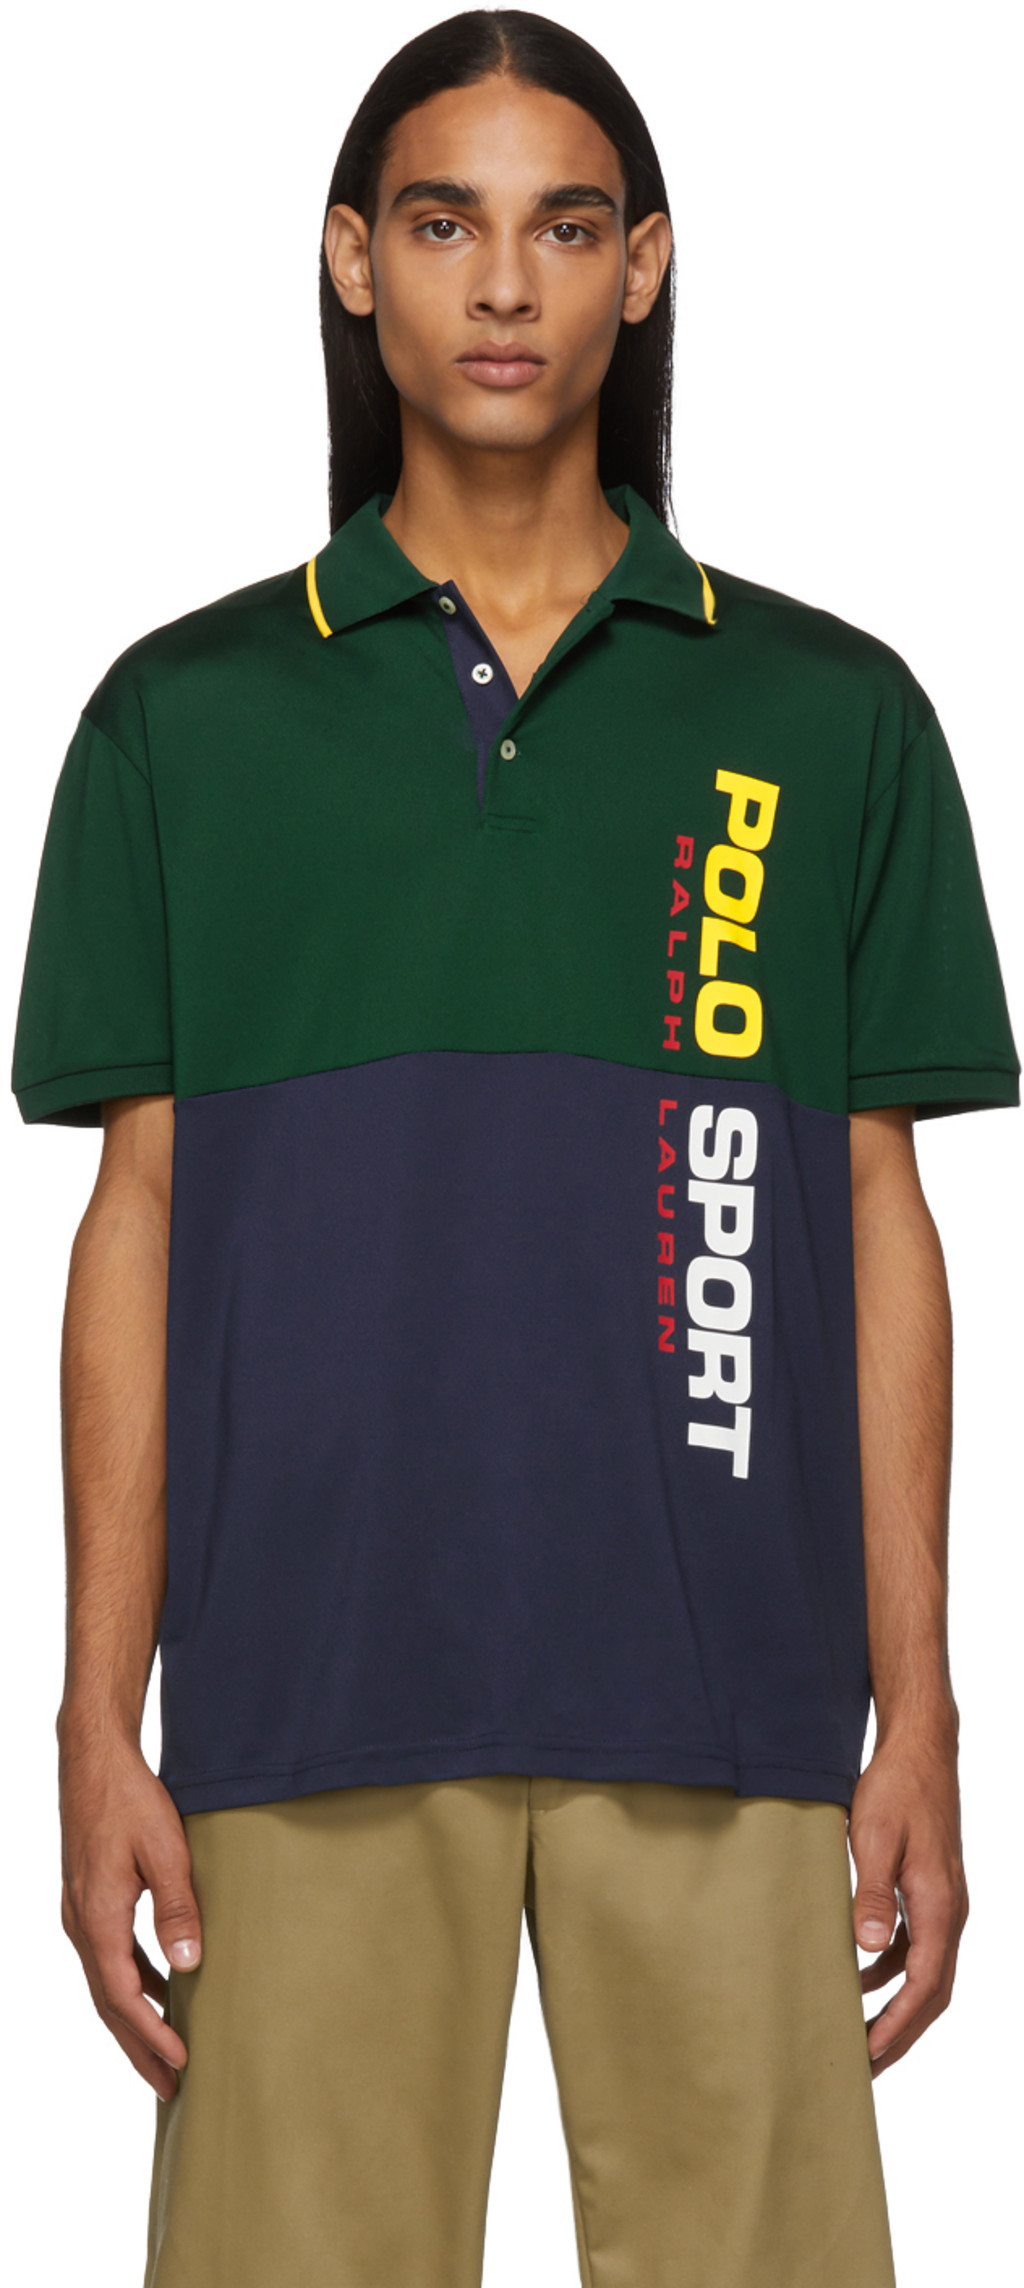 Navy Mesh Stretch Navy Polo Greenamp; Greenamp; Greenamp; Navy Mesh Stretch Polo eY9EHI2WD